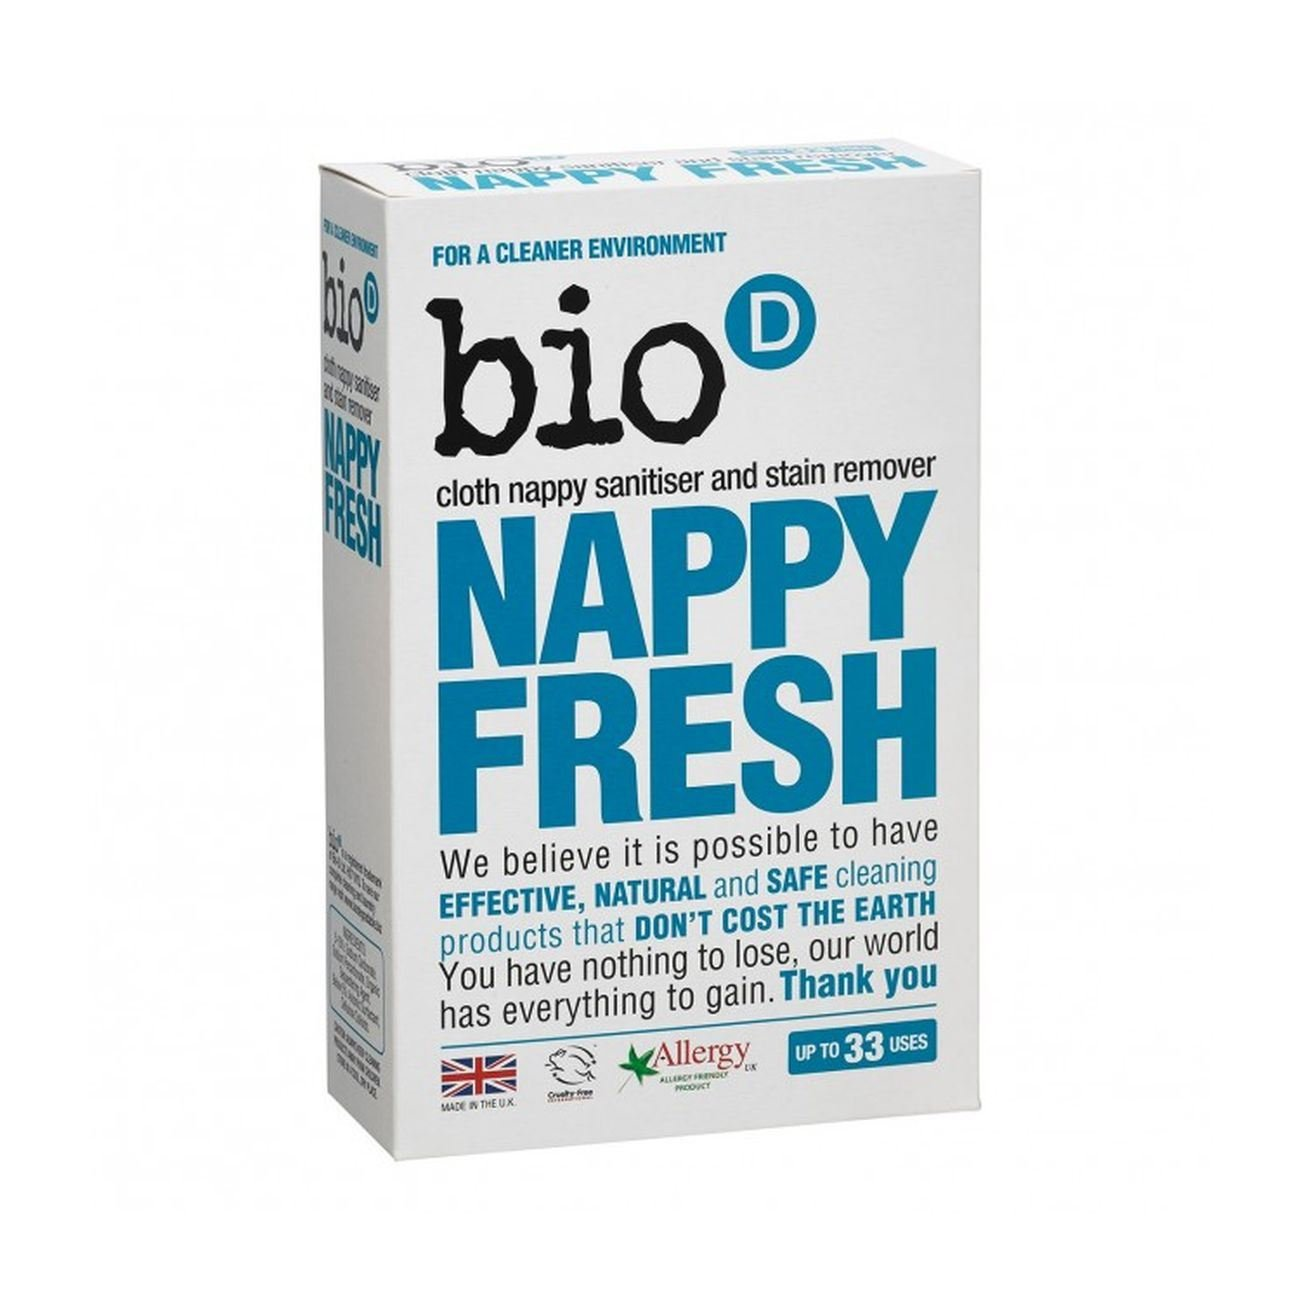 Nappy Fresh 500g: Bio D